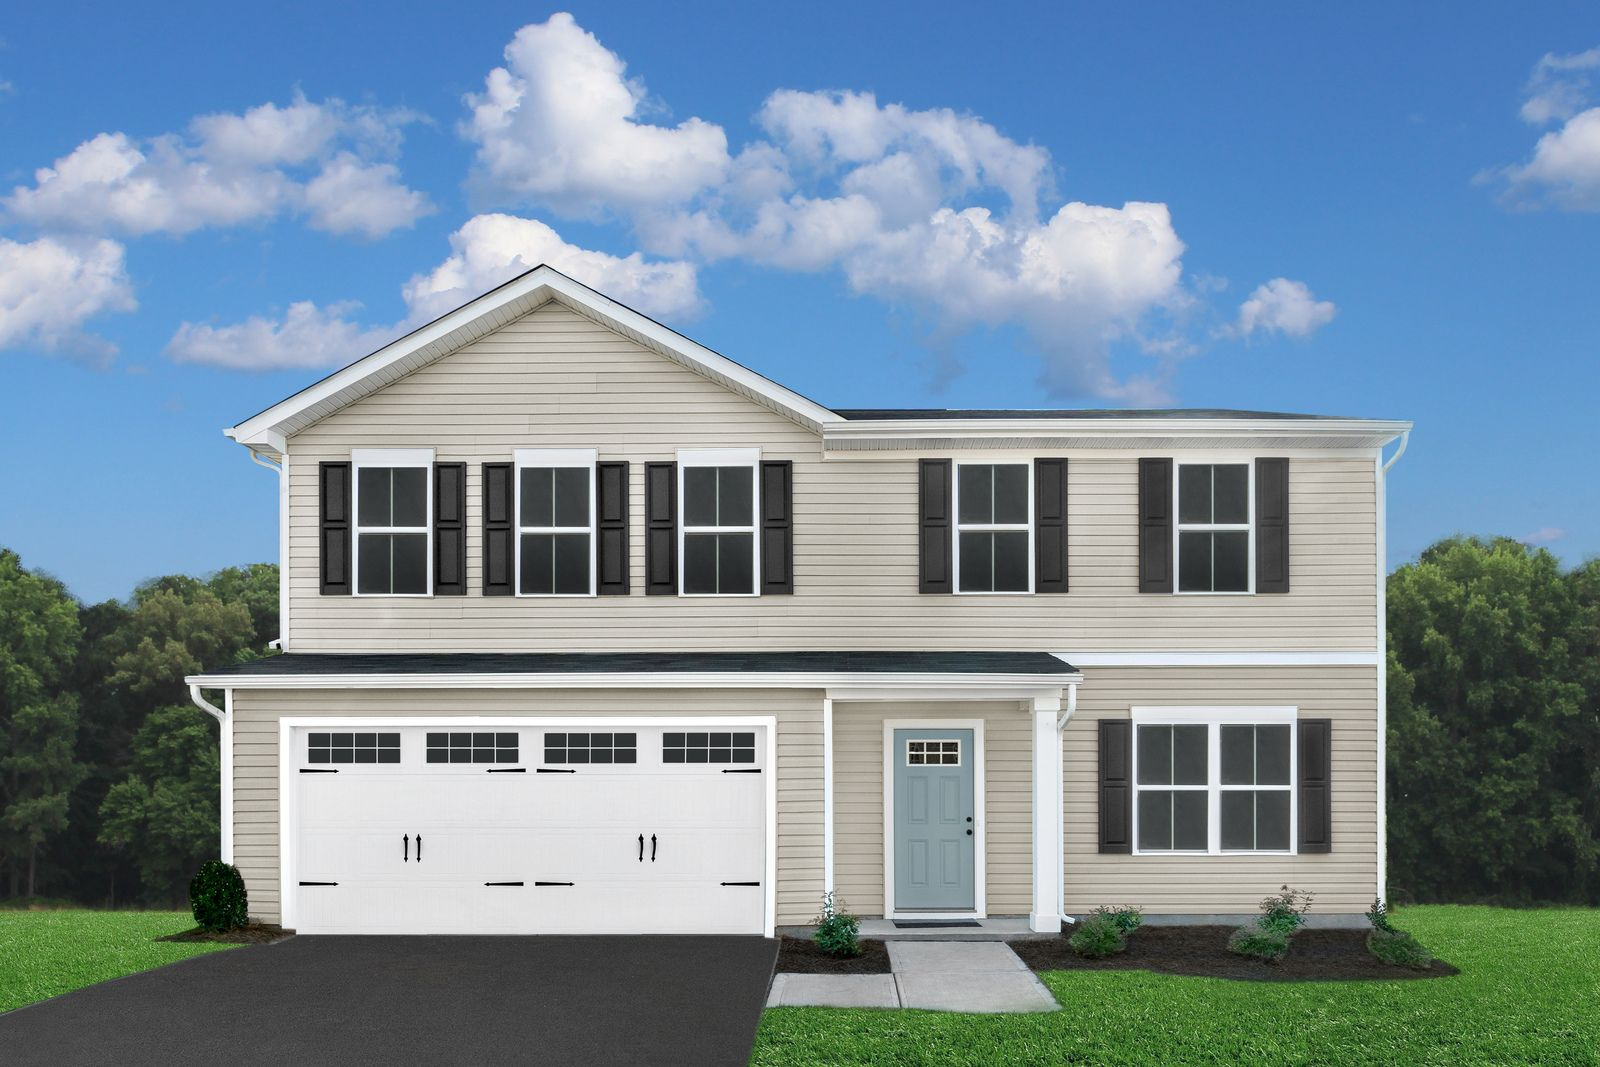 WELCOME TO THE GROVE AT SHADY CREEK!:Affordable single-family homes w/ 2-car garages, conveniently located just 15 mins from Harrisonburg! Own for less than $1,600/mo., PLUS receive granite countertops & $5k in closing cost!Visit today!